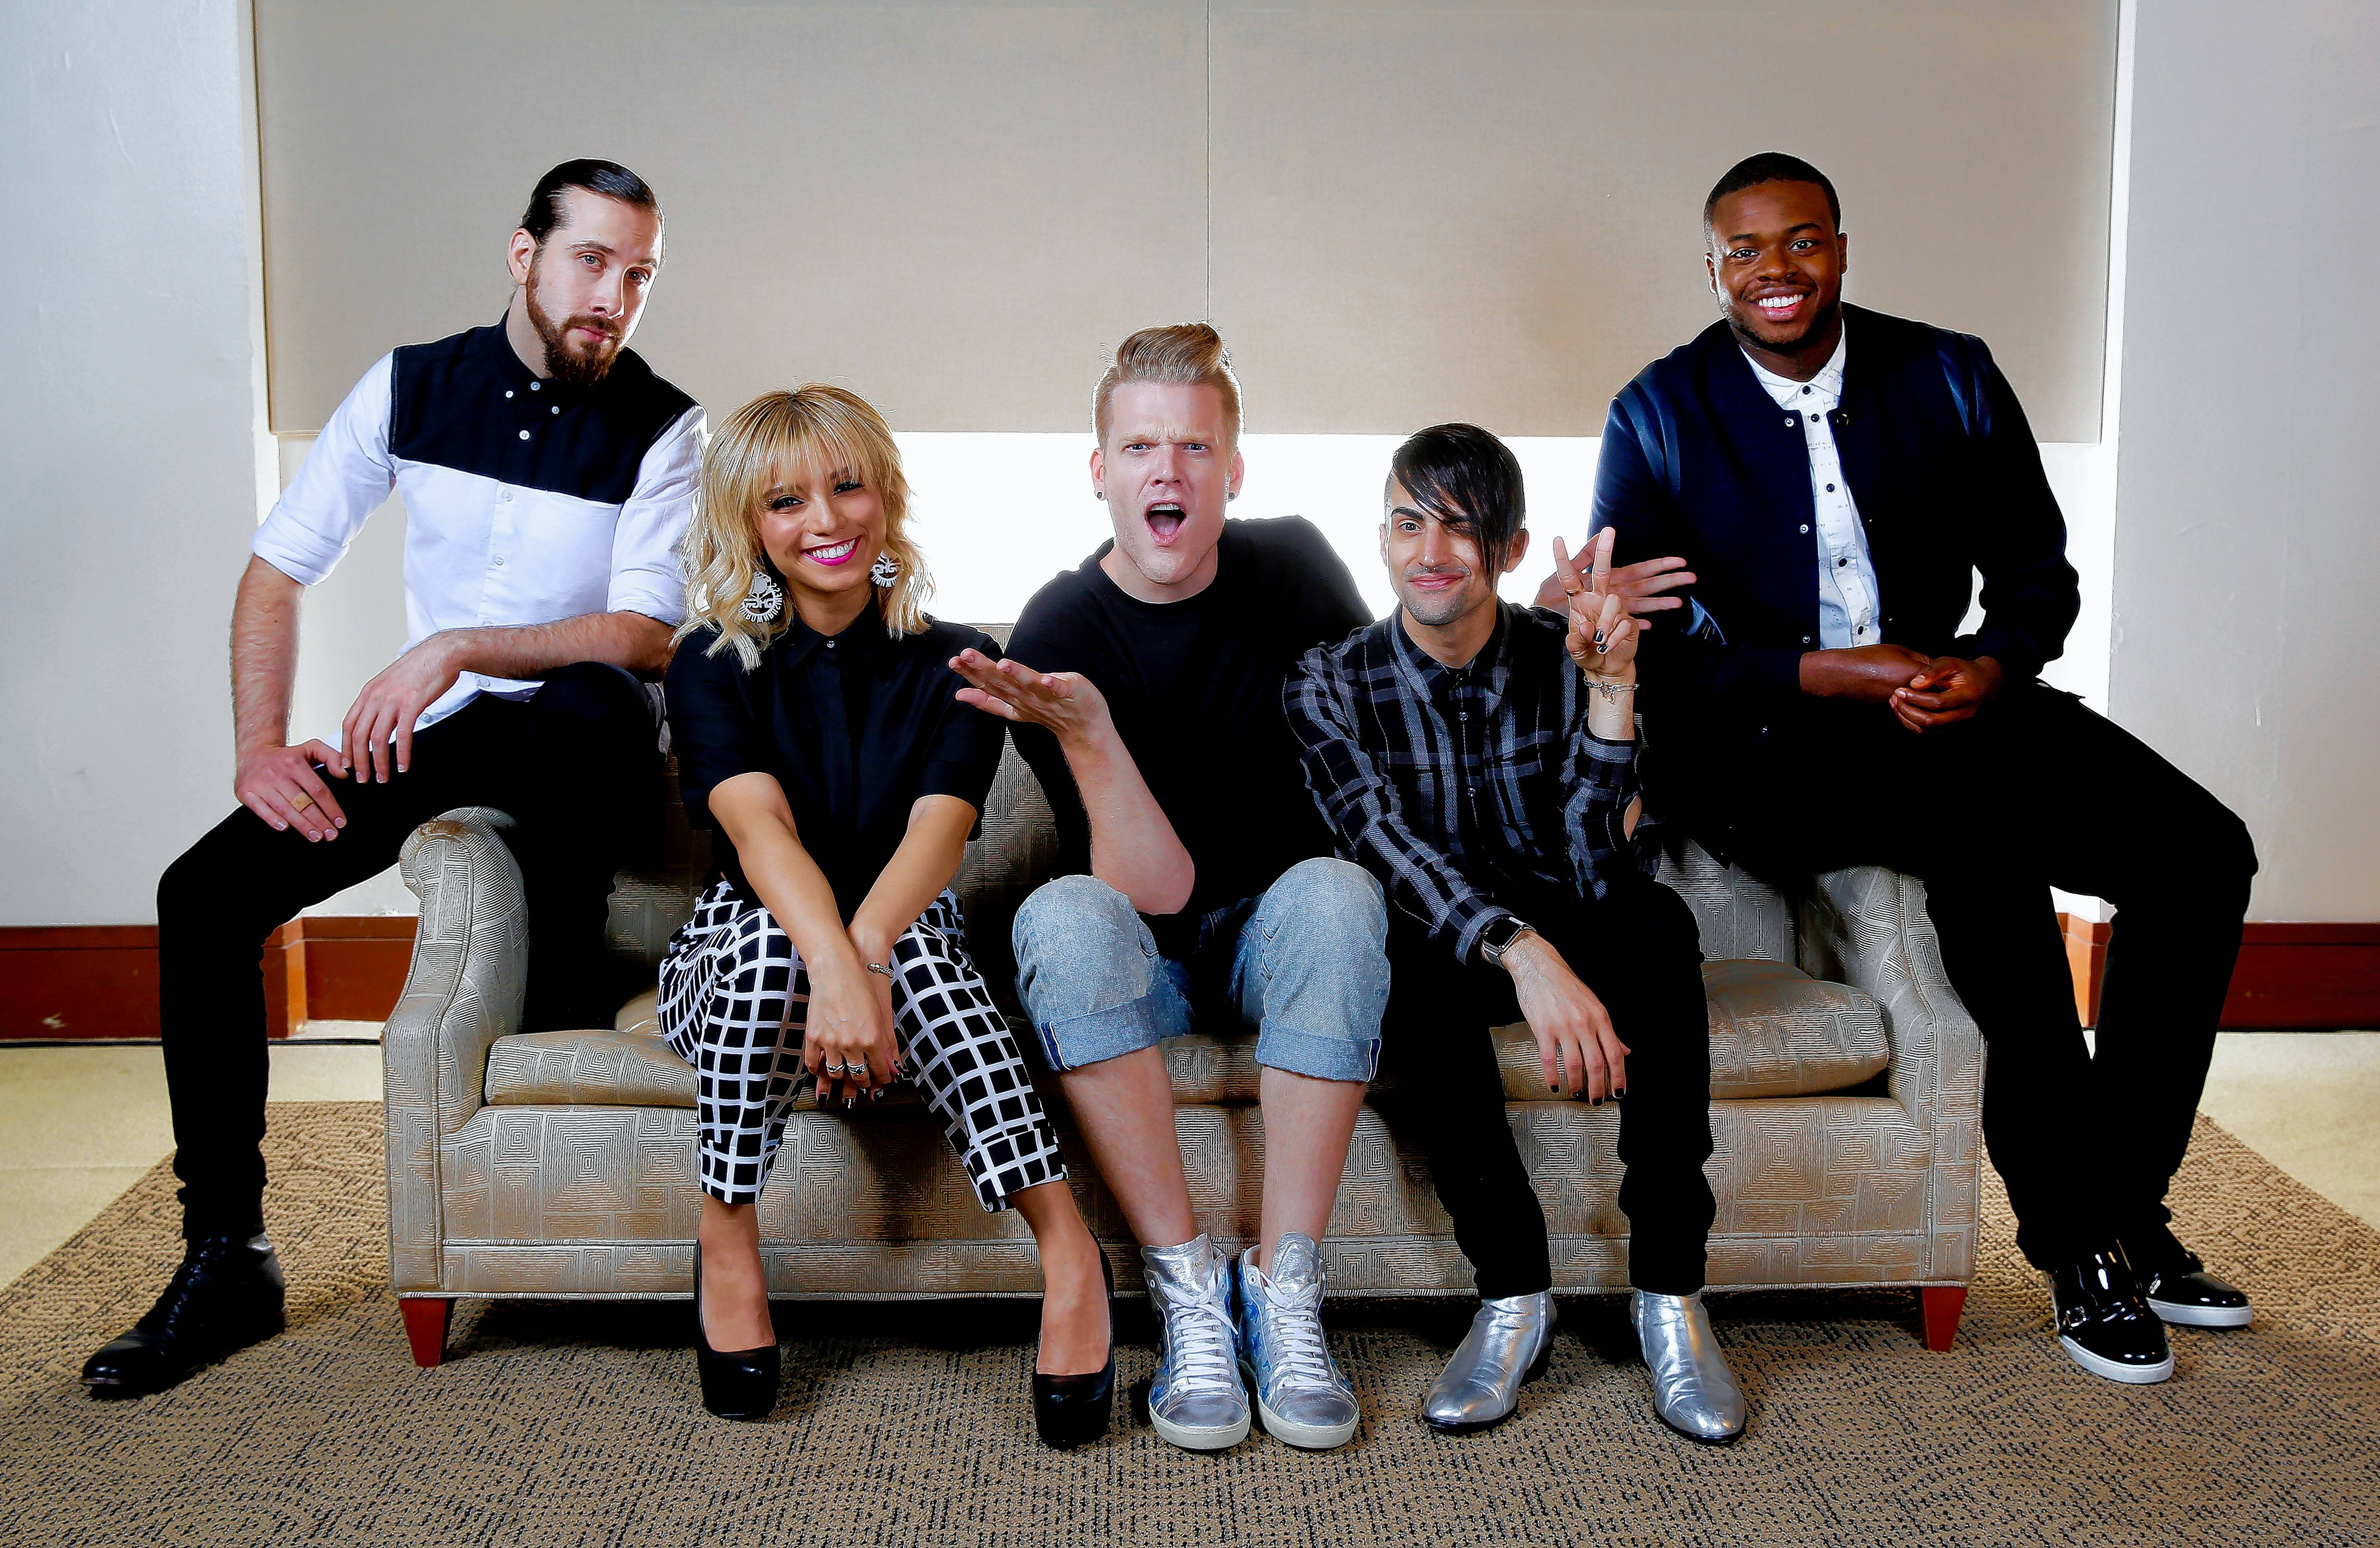 The Pentatonix will headline on Thursday, Oct. 27, at the Allstate Arena. Pictured from left are Avi Kaplan, Kristie Maldonado, Scott Hoying, Mitch Grassi and Kevin Olusola.